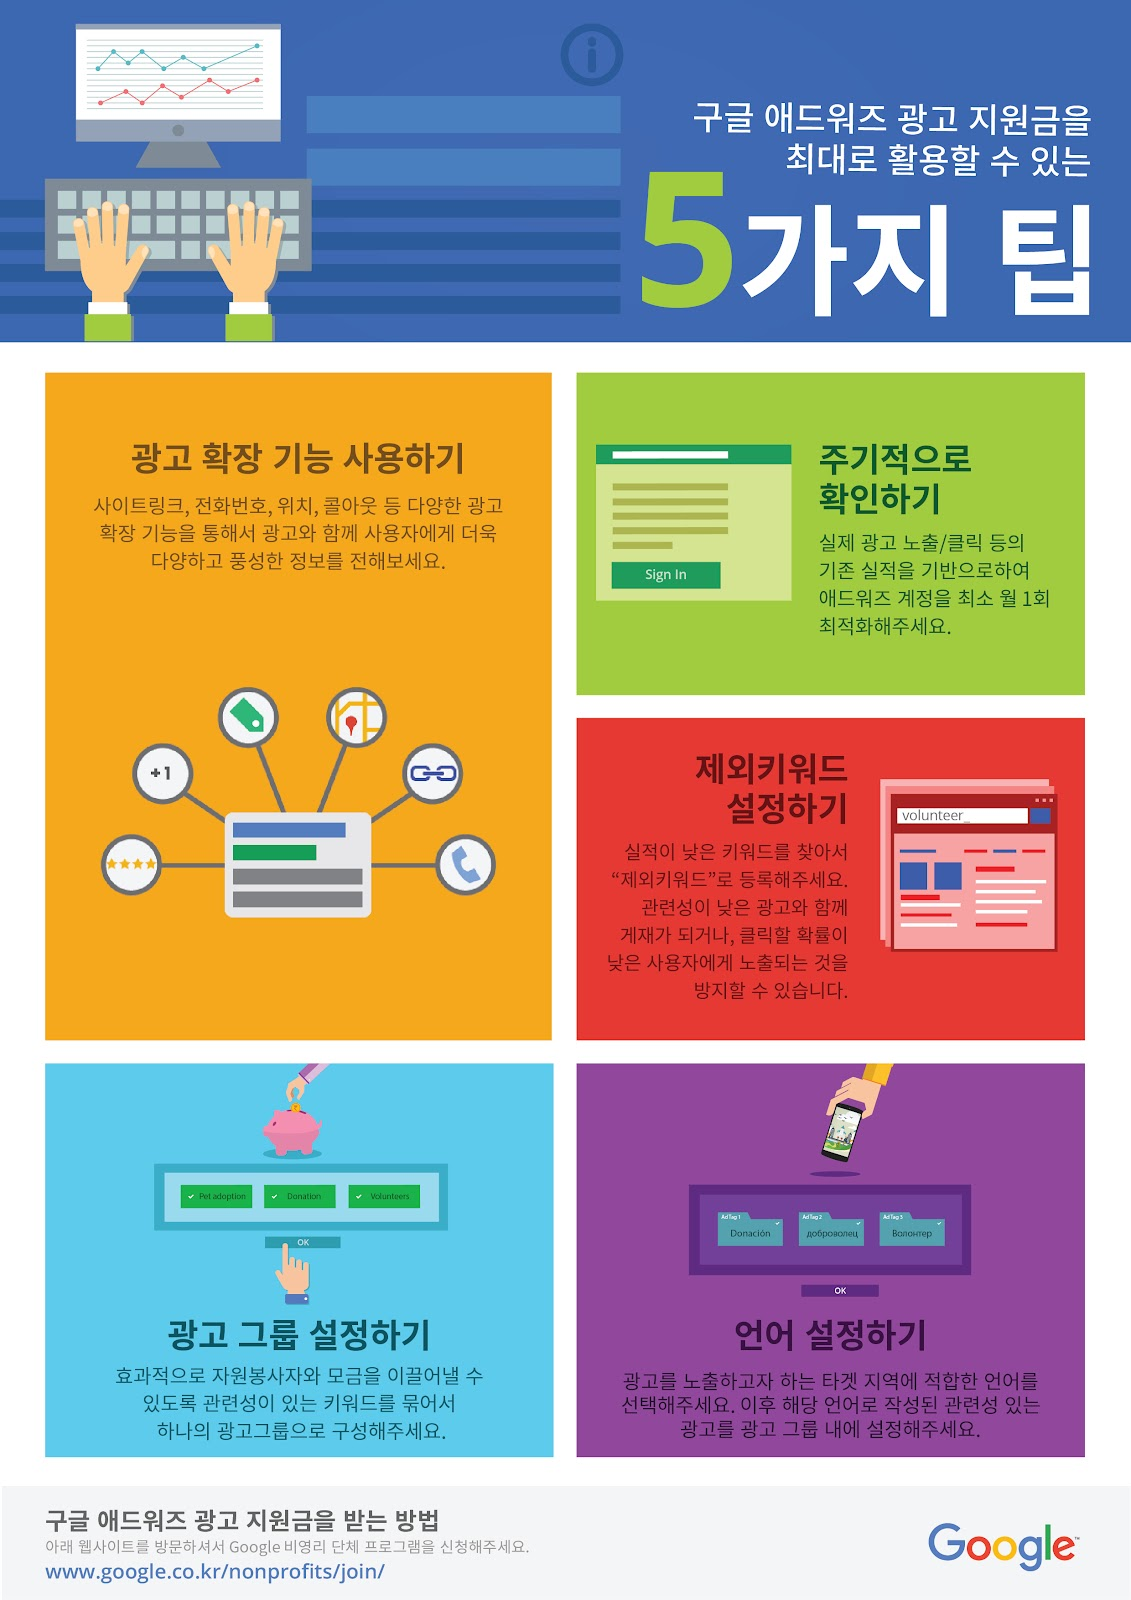 (KR) Top-5-tips-to-make-the-most-of-Google-Ad-Grants.jpg